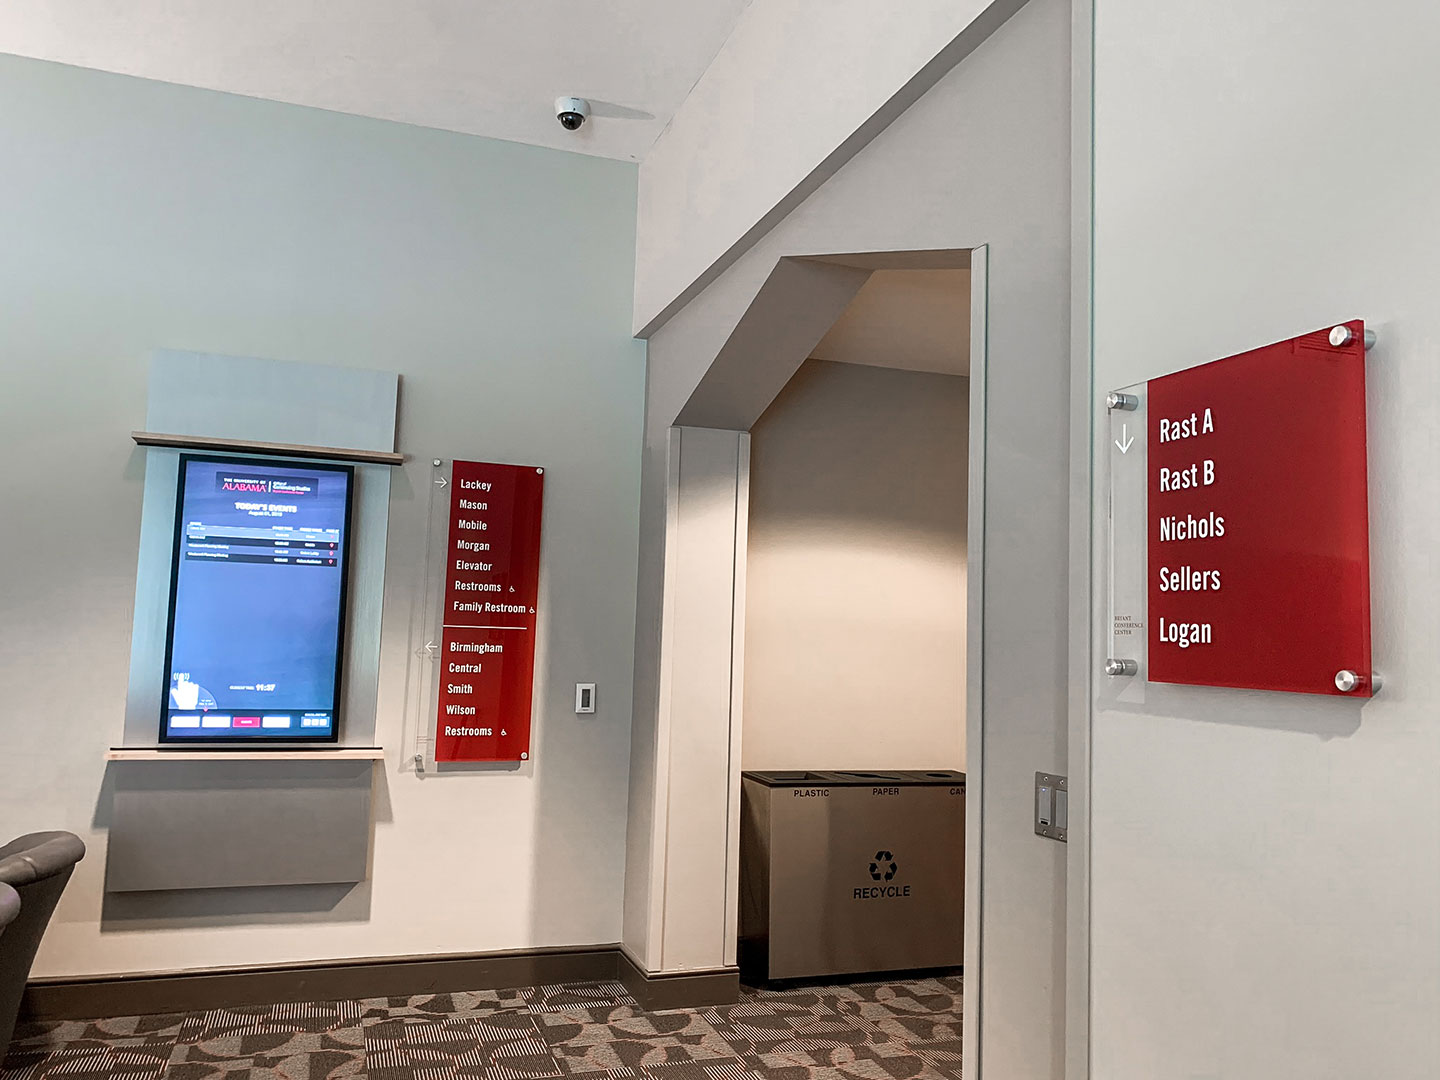 Example of how multiple sign types can frame a decision point at the Bryant Conference Center